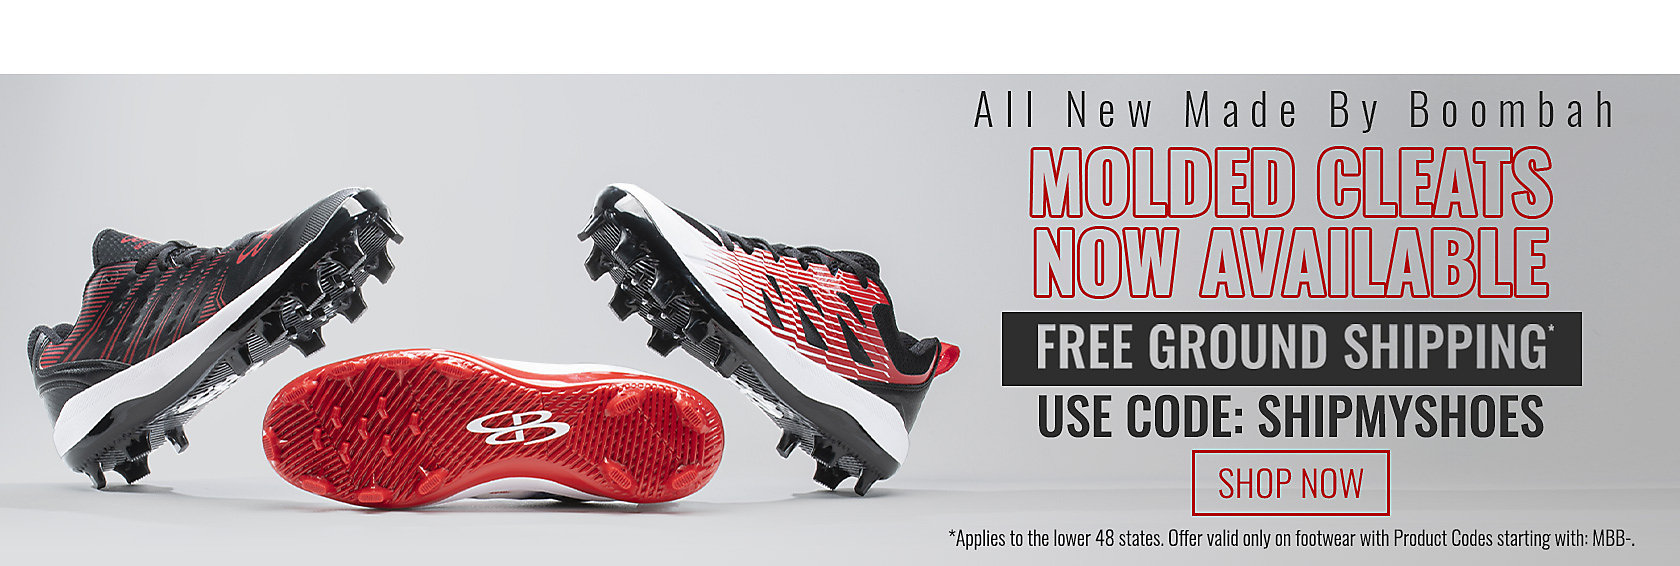 All New Molded Cleats Made By Boombah Free Ground Shipping